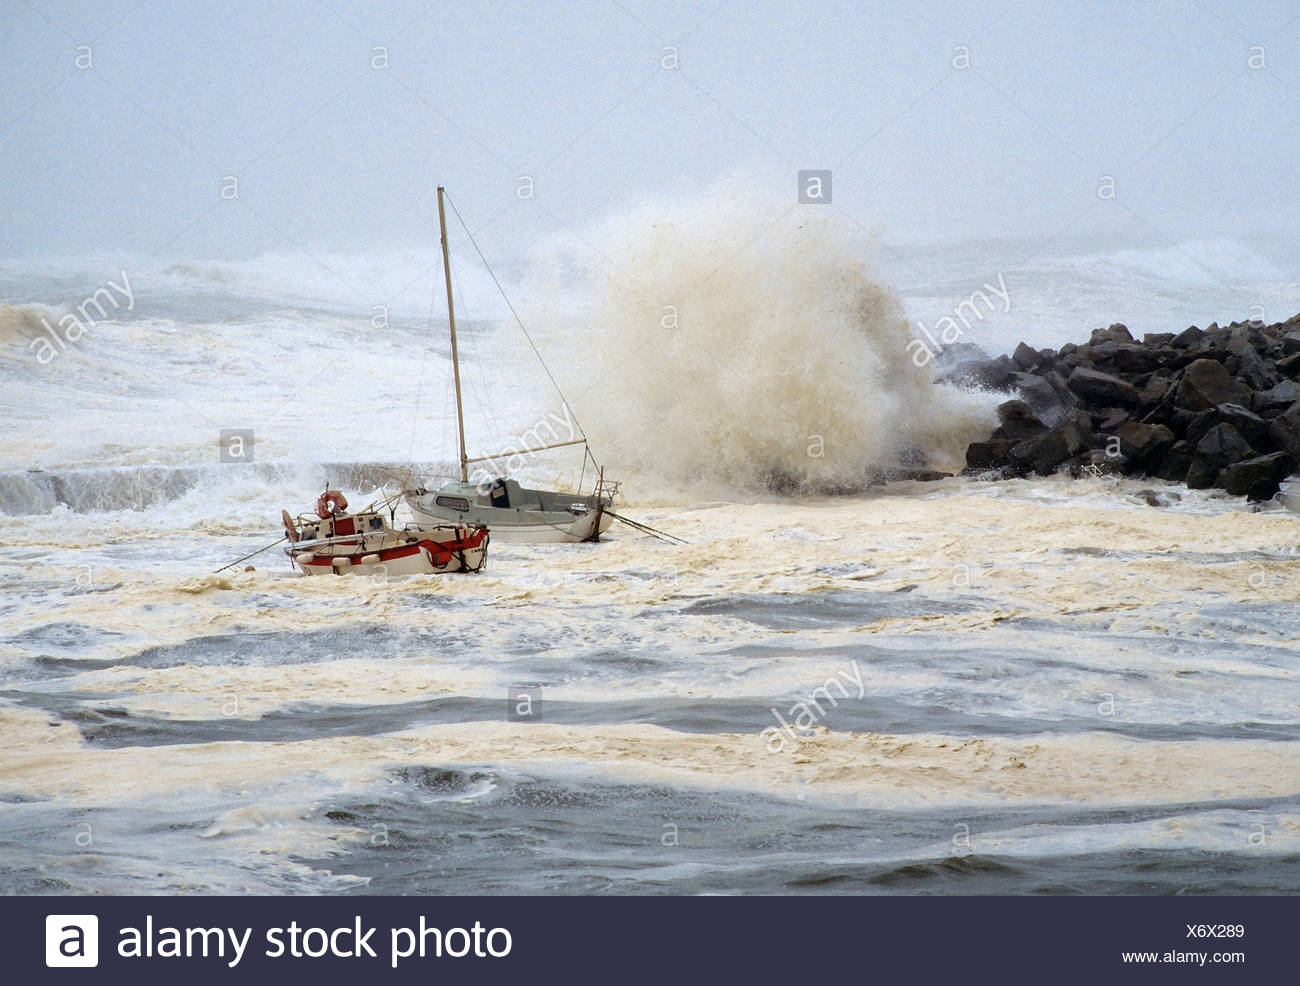 High waves crashing over rocks, rocking small boats, stormy seas on the Brittany coast, hurricane, Finistere, Brittany, France - Stock Image